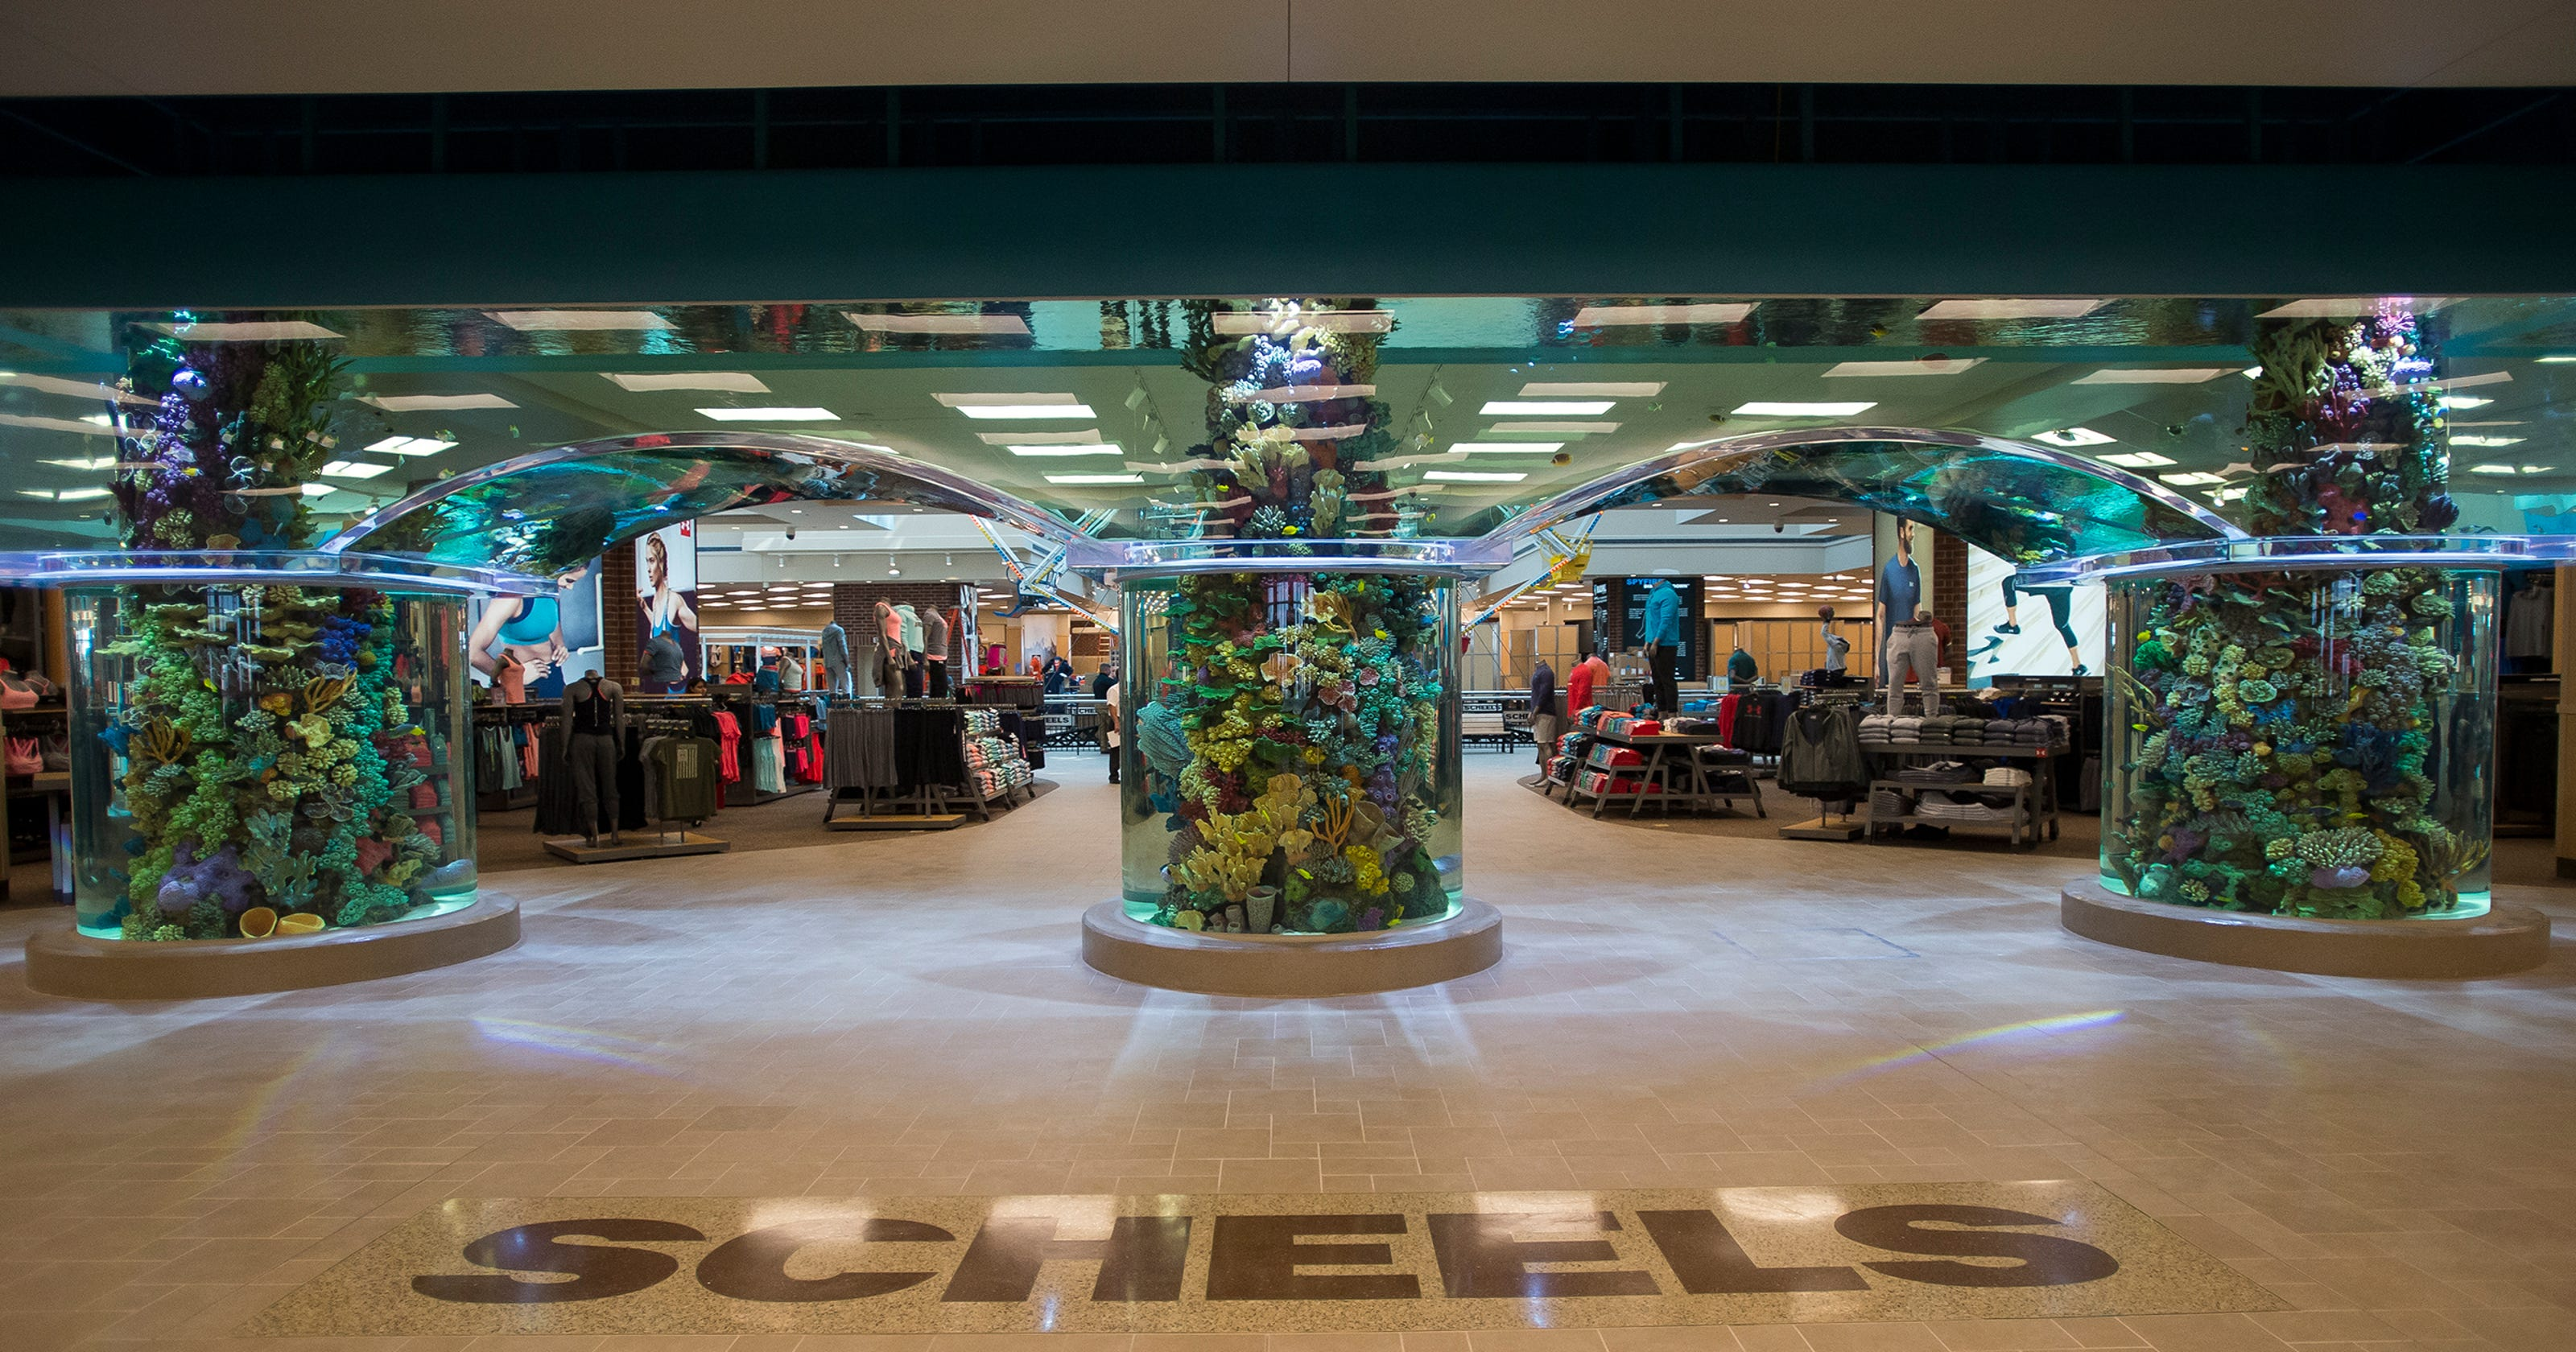 c279bb28fd8 5 things to do at Scheels besides shopping